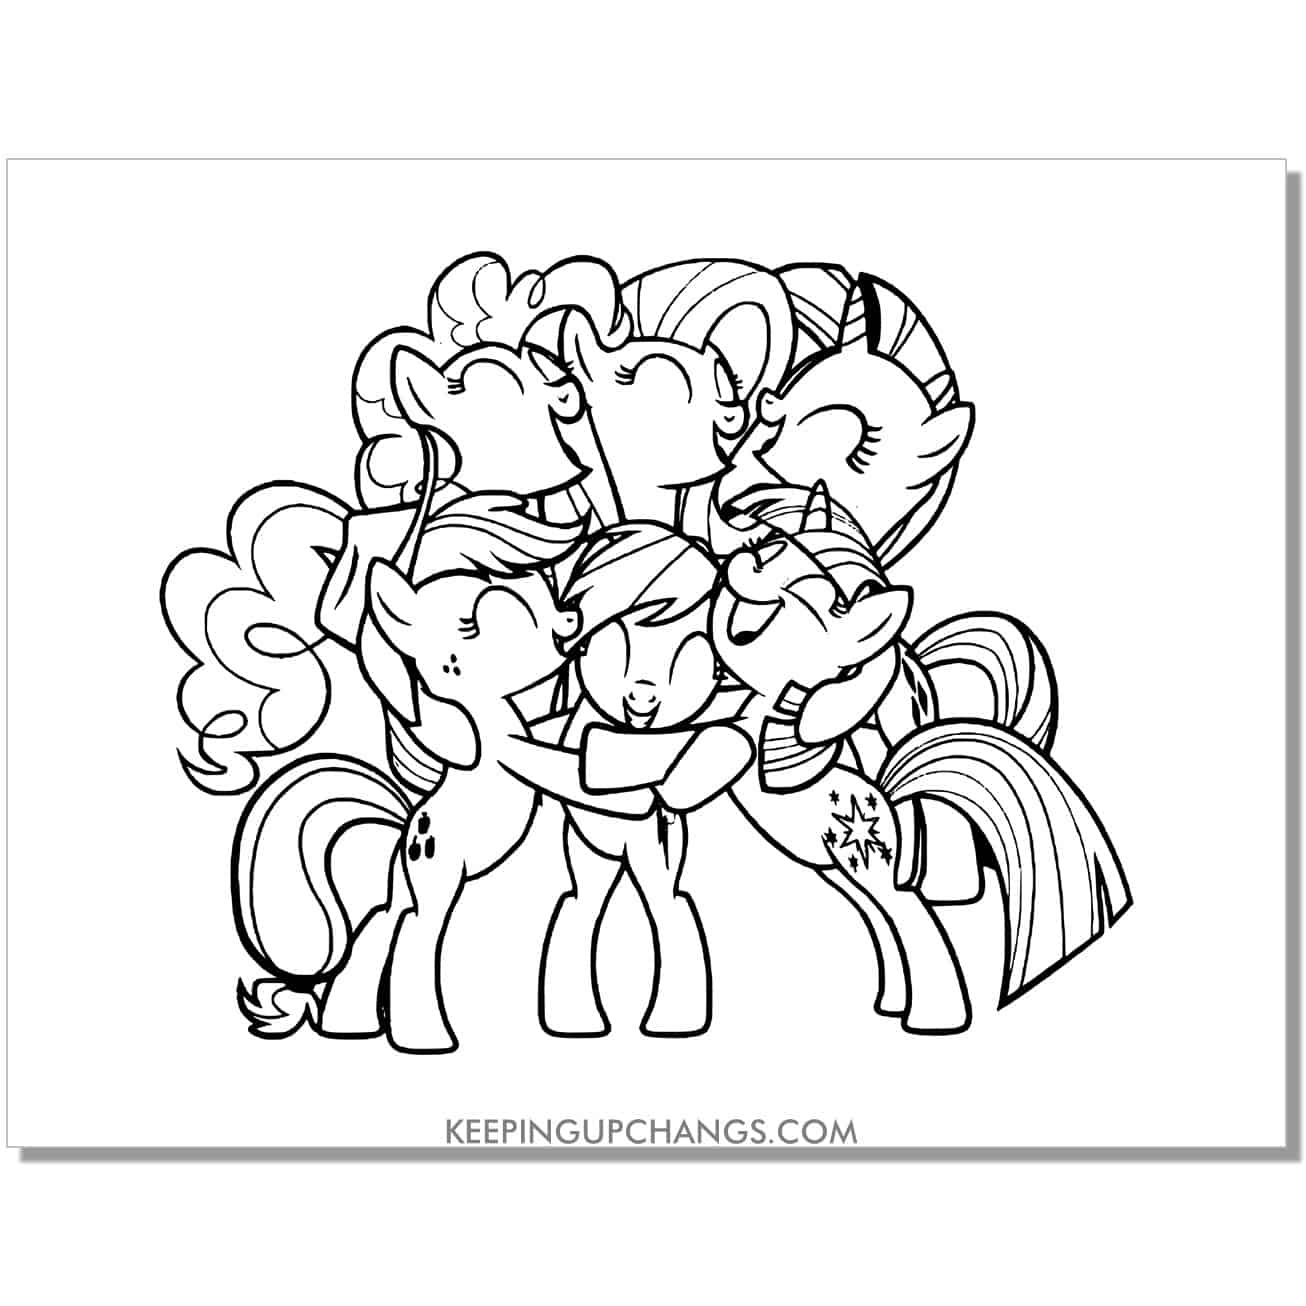 free my little pony hugging coloring page.